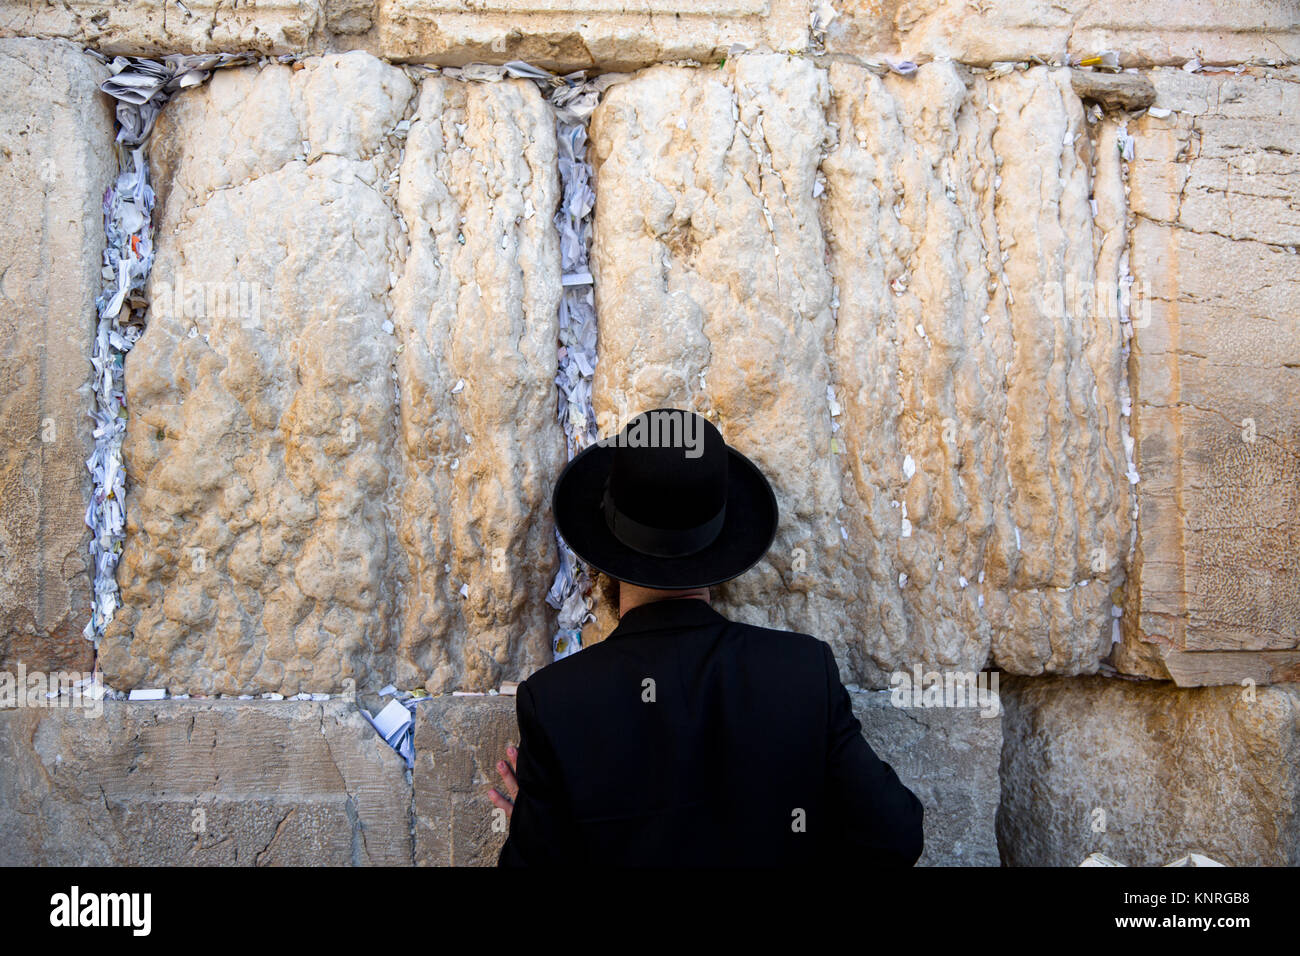 Jew praying in Jerusalem at man section of the Wailing Wall, the wall of the temple - Stock Image